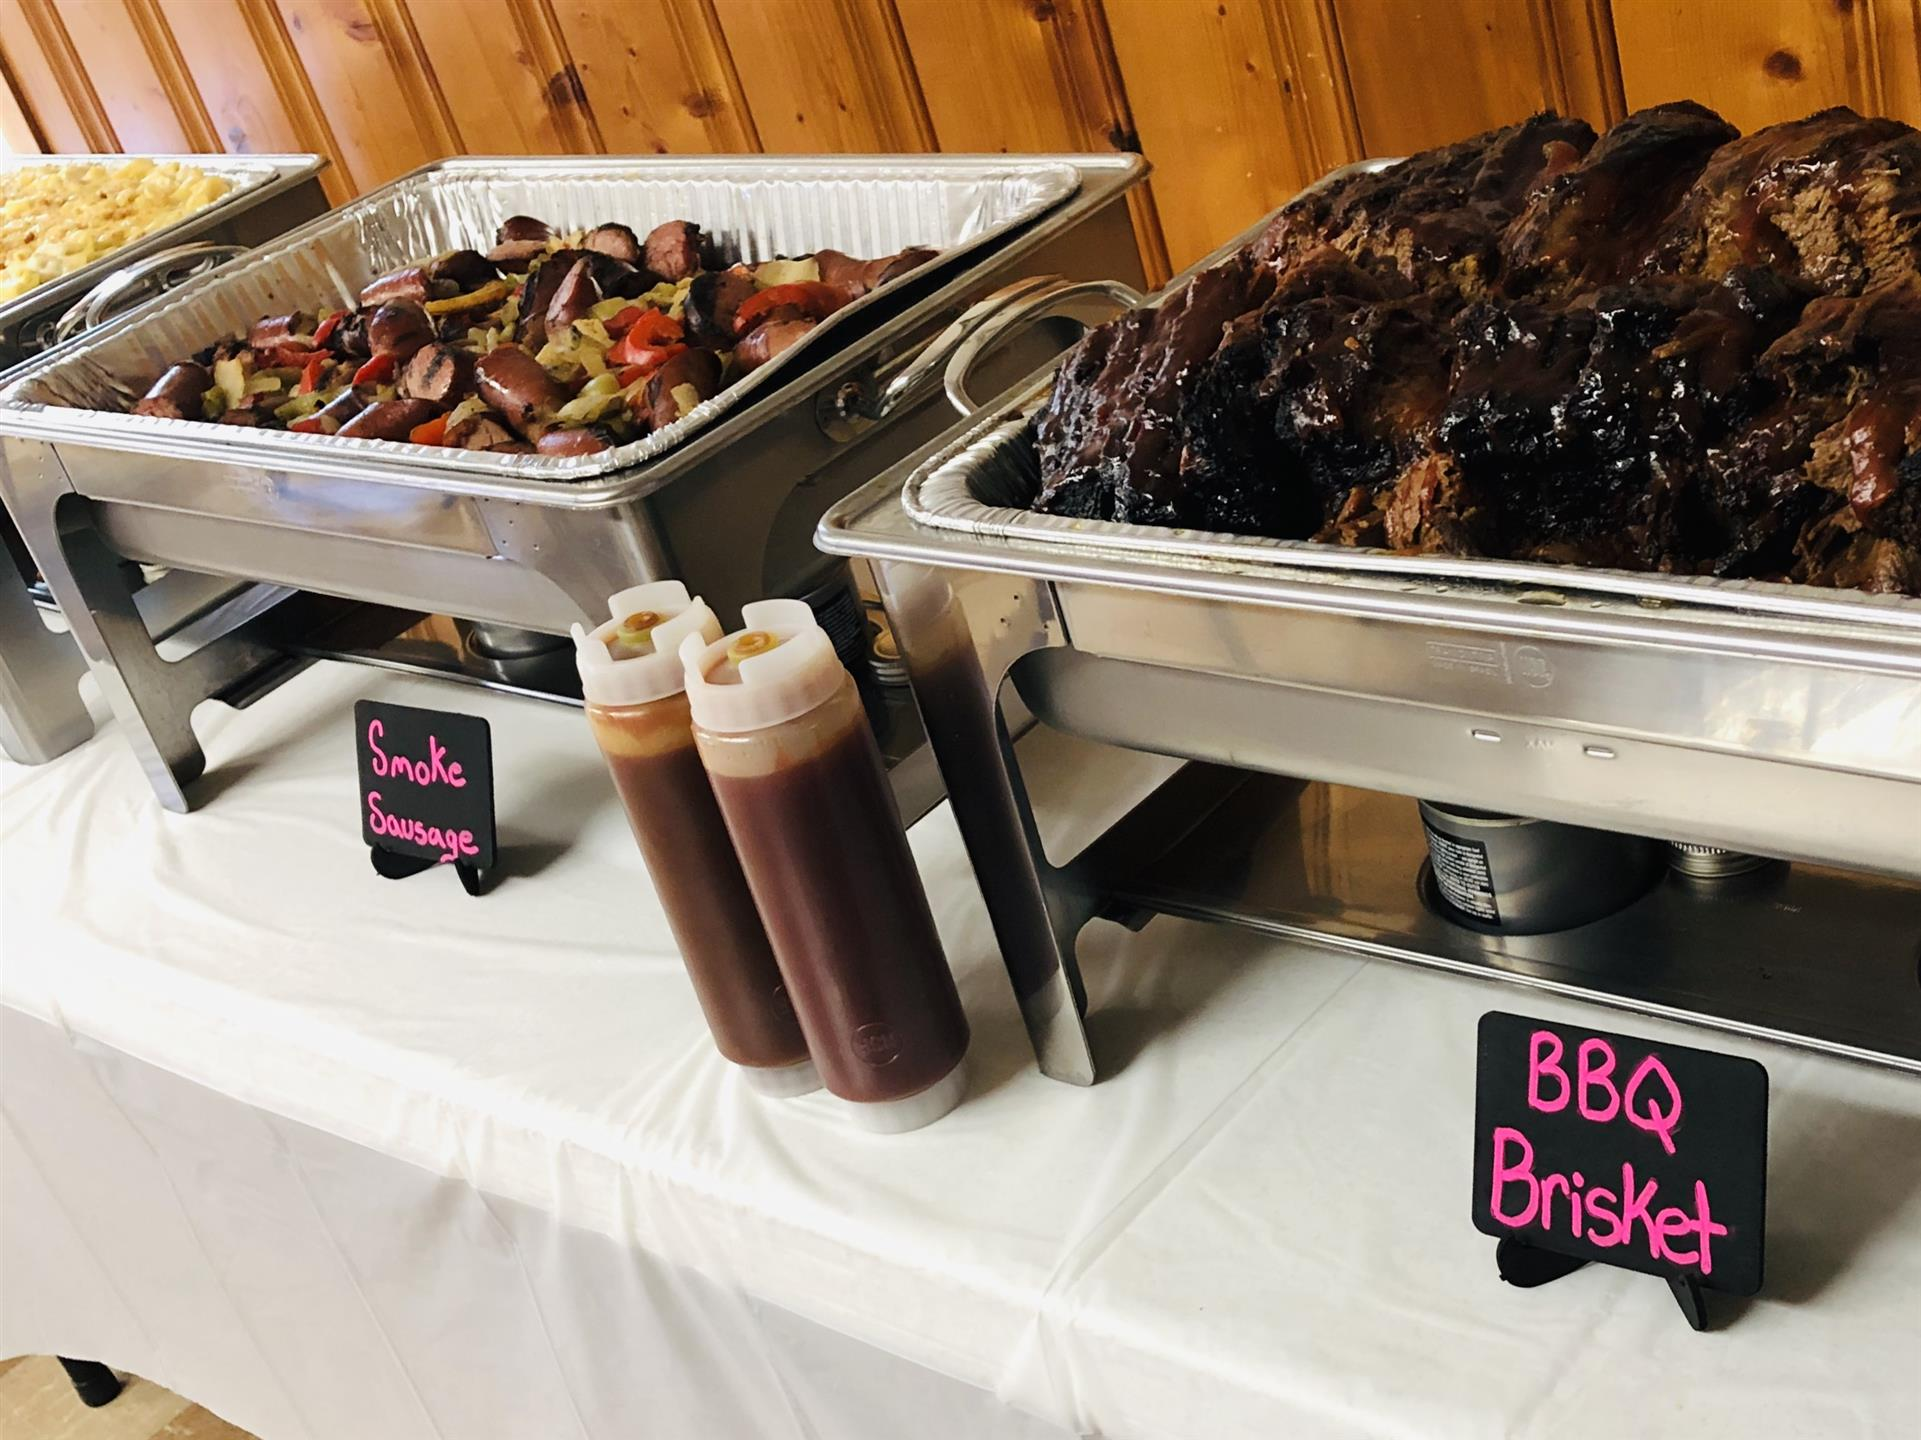 bbq brisket and smoked sausage on buffet